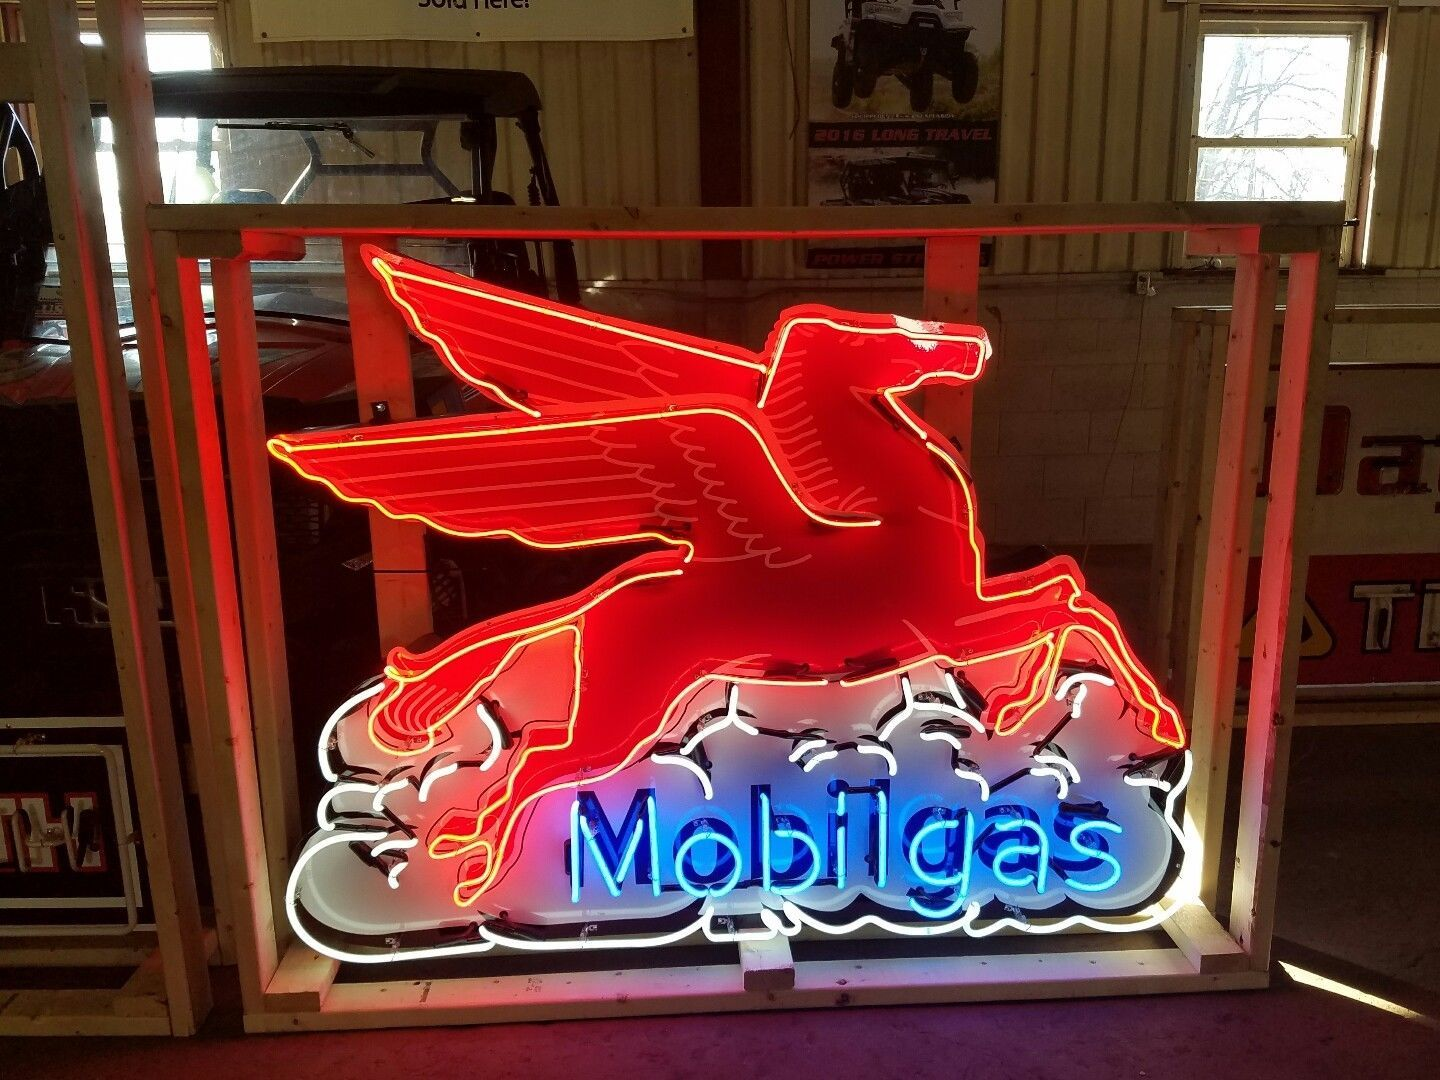 Mobil Pegasus Neon Lighted Sign 5ftx4Ft | eBay